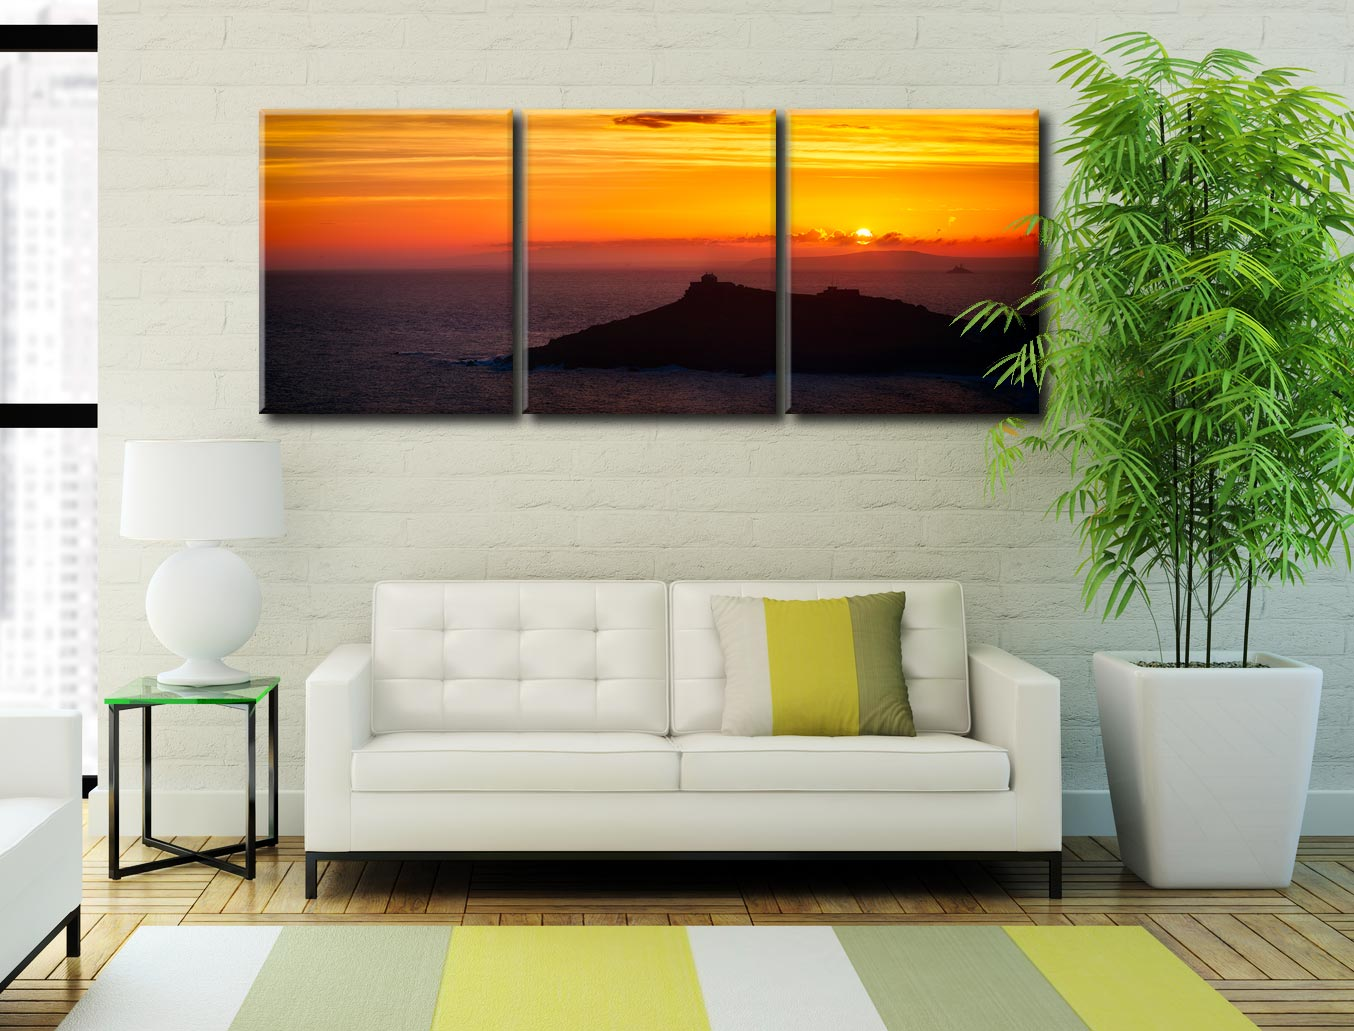 Sunrise Over St Ives Island - 3 Panel Canvas on Wall